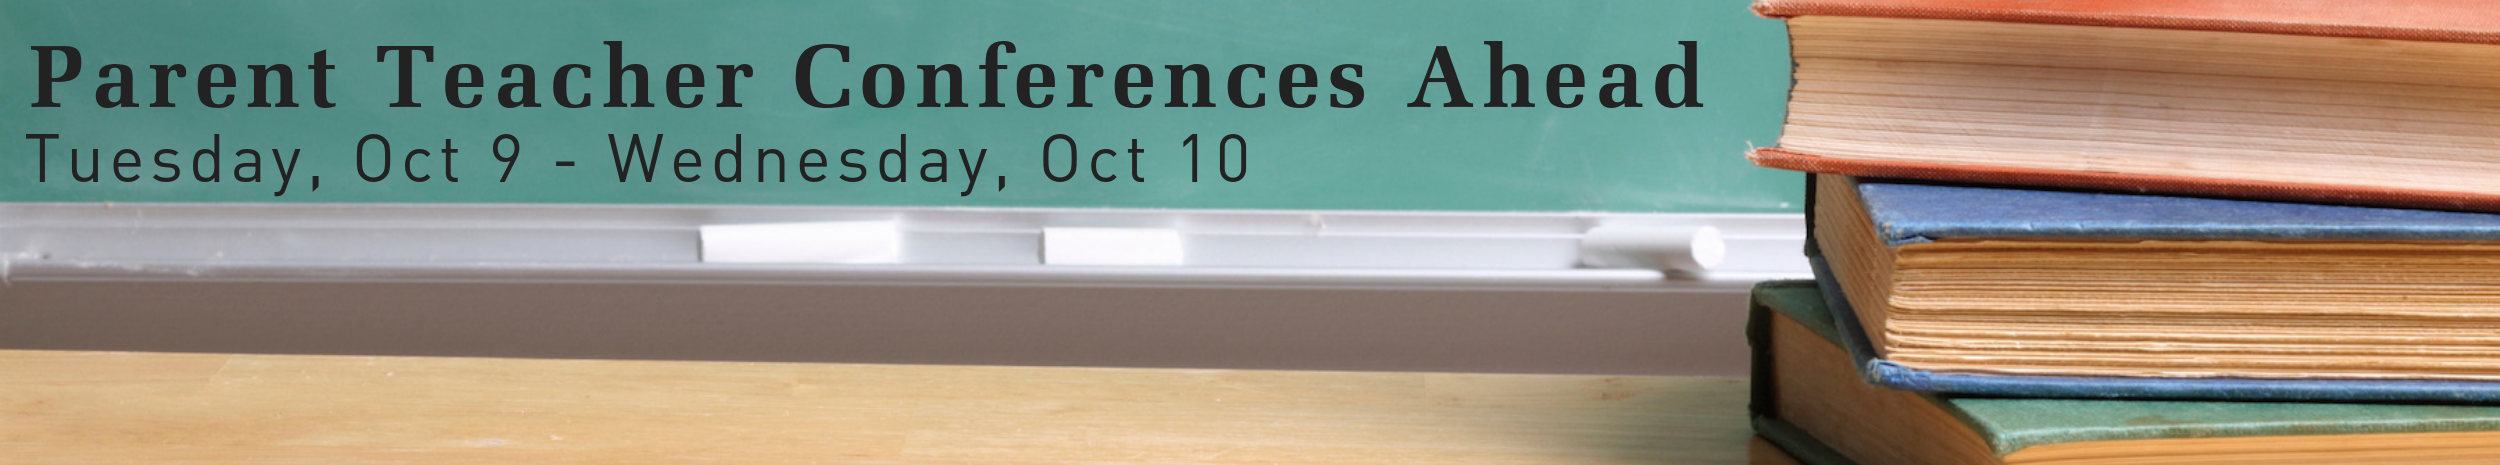 Parent Teacher Conferences Ahead  |  Tuesday, Oct 9 - Wednesday, Oct 10